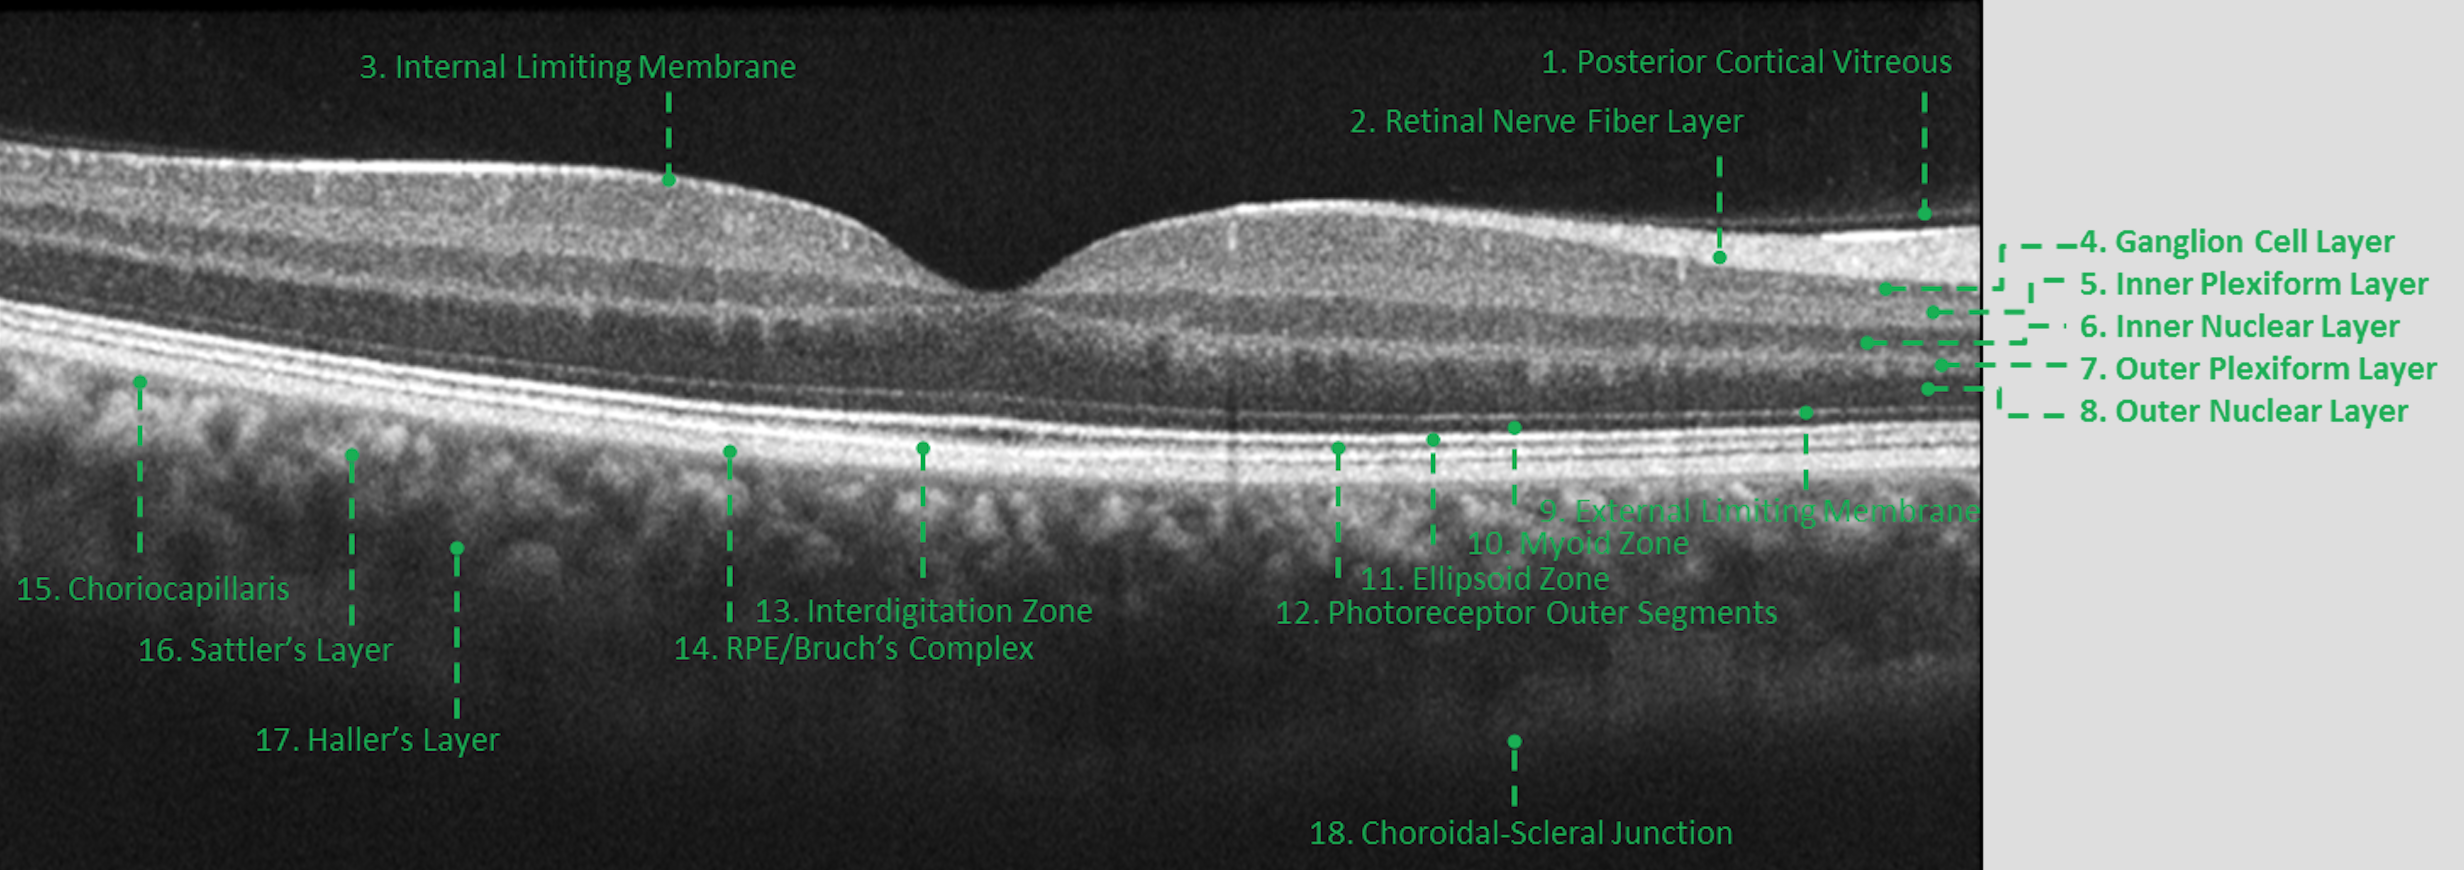 A Complete List of Ocular Diseases with Optical Coherence Tomography